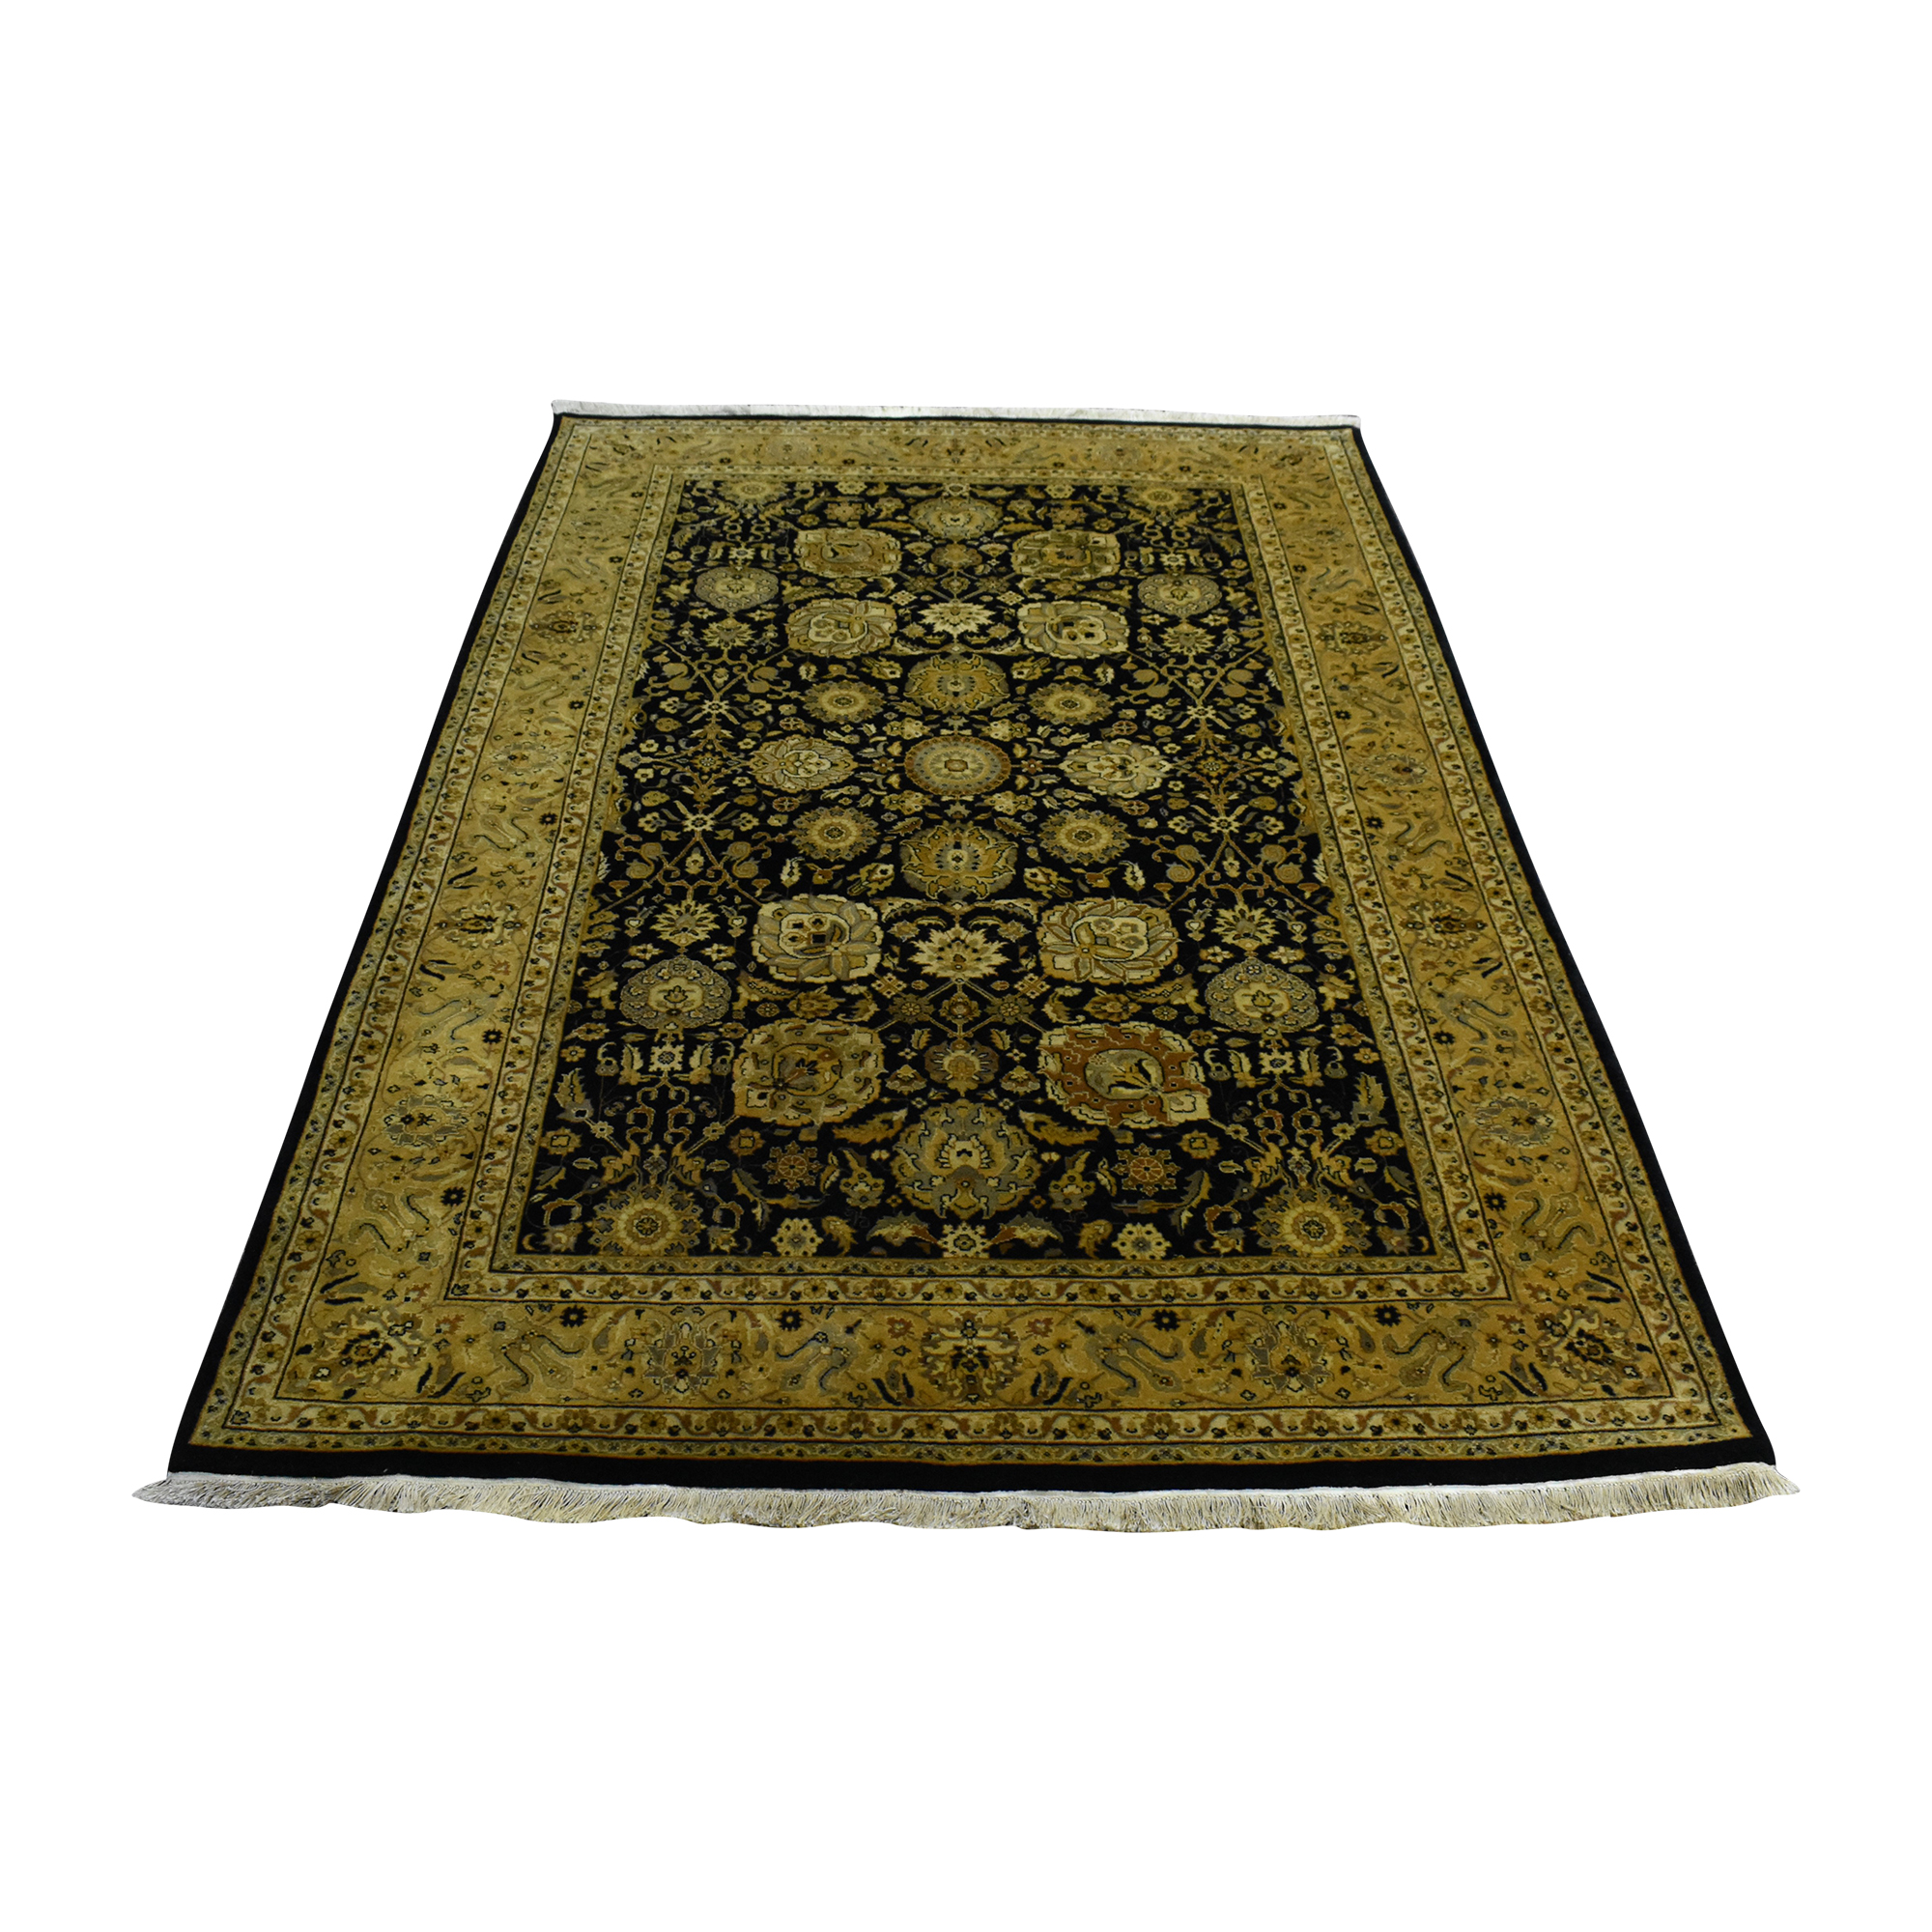 Patterned Area Rug Decor